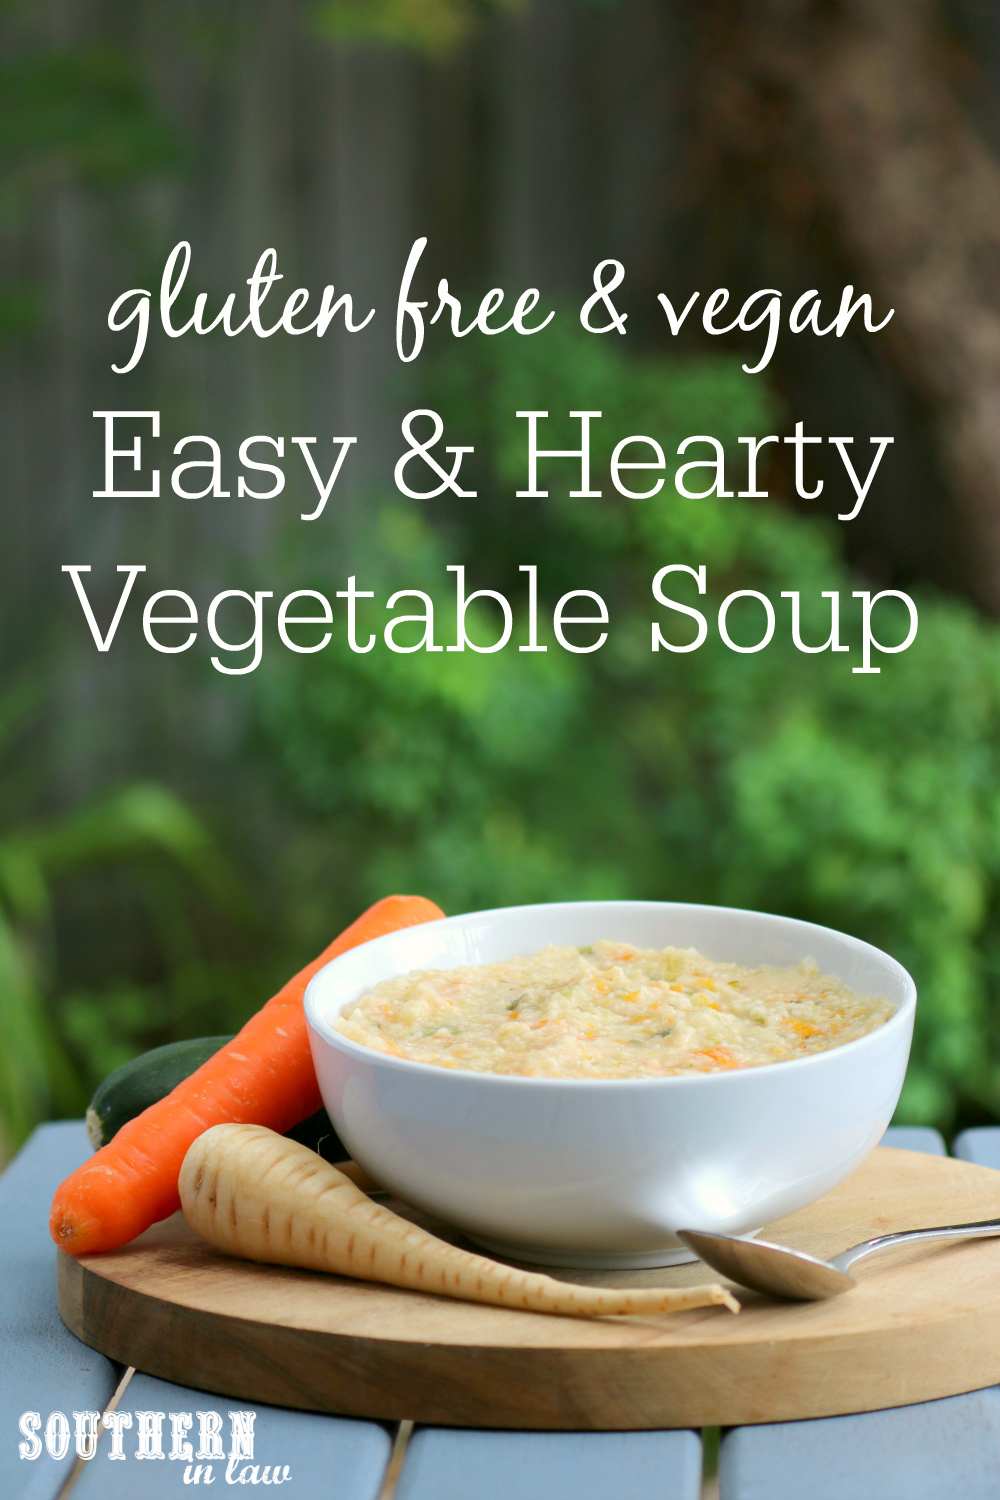 Southern In Law Recipe Easy Homemade Vegetable Soup Gluten Free Vegan